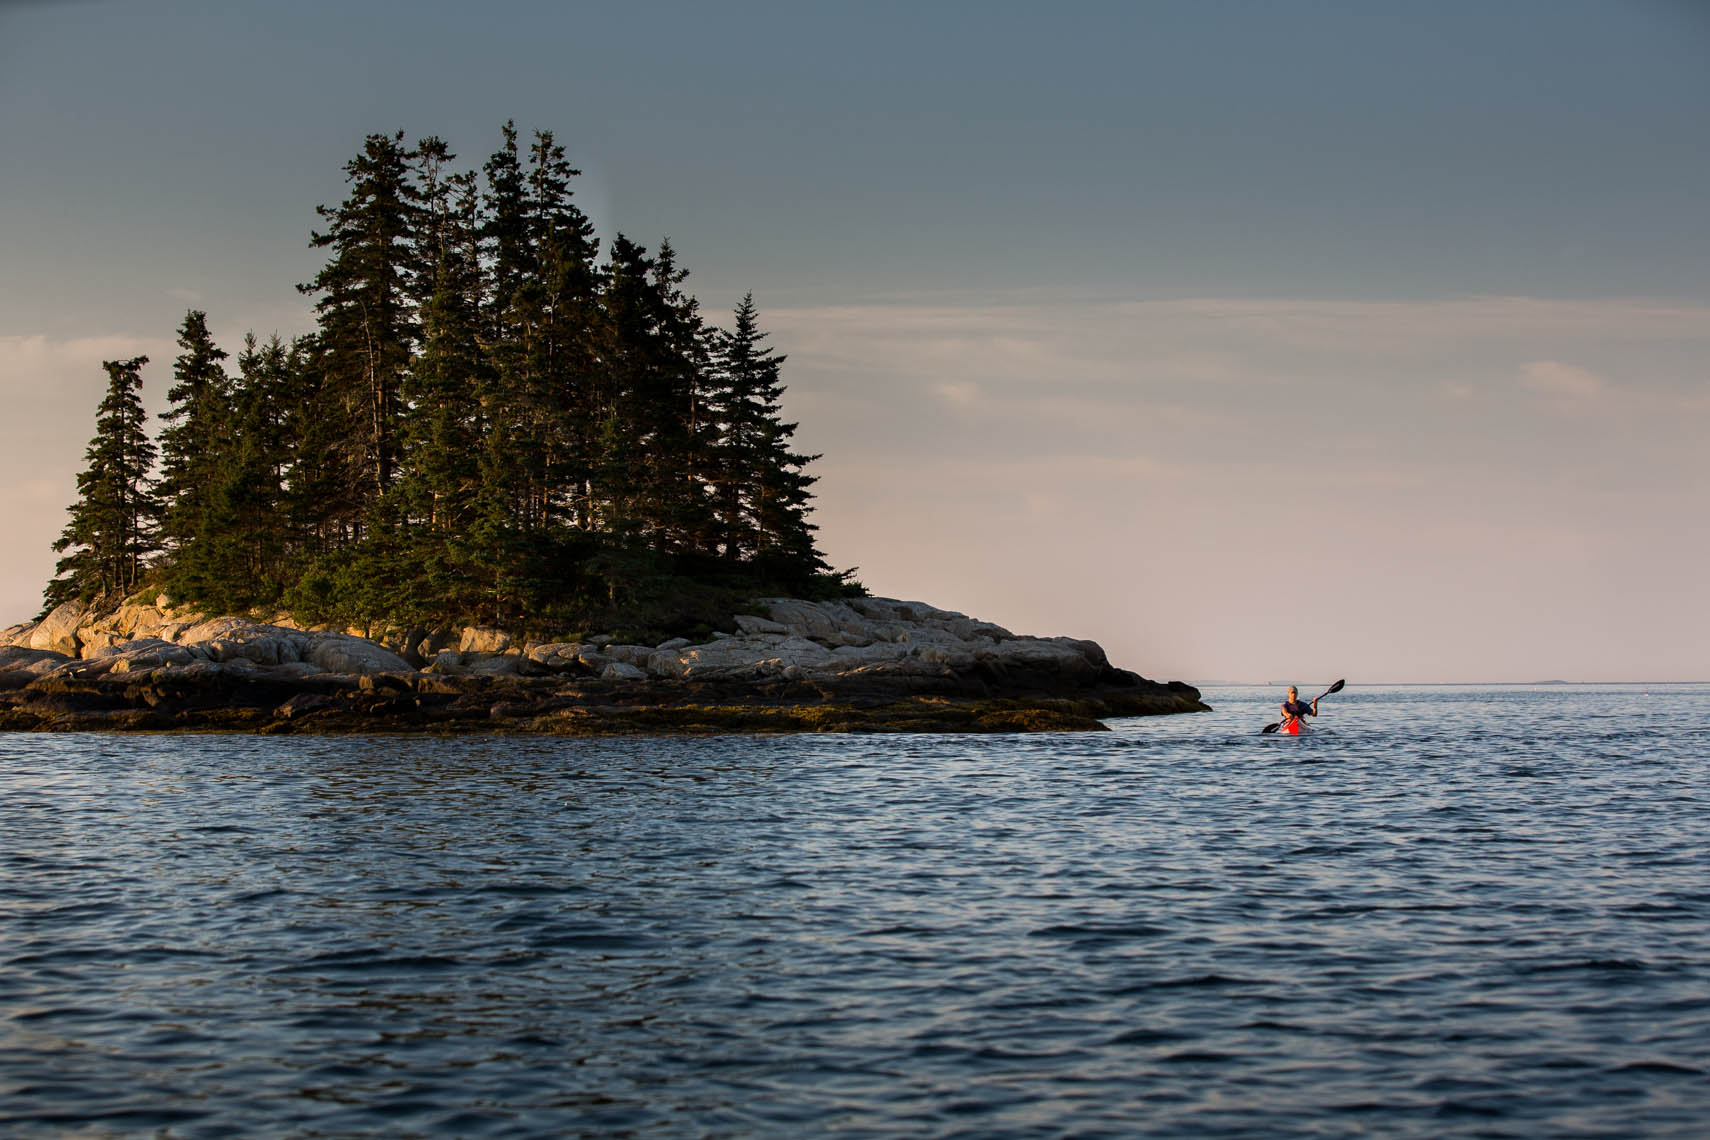 Sea Kayaking- Friendship, Maine